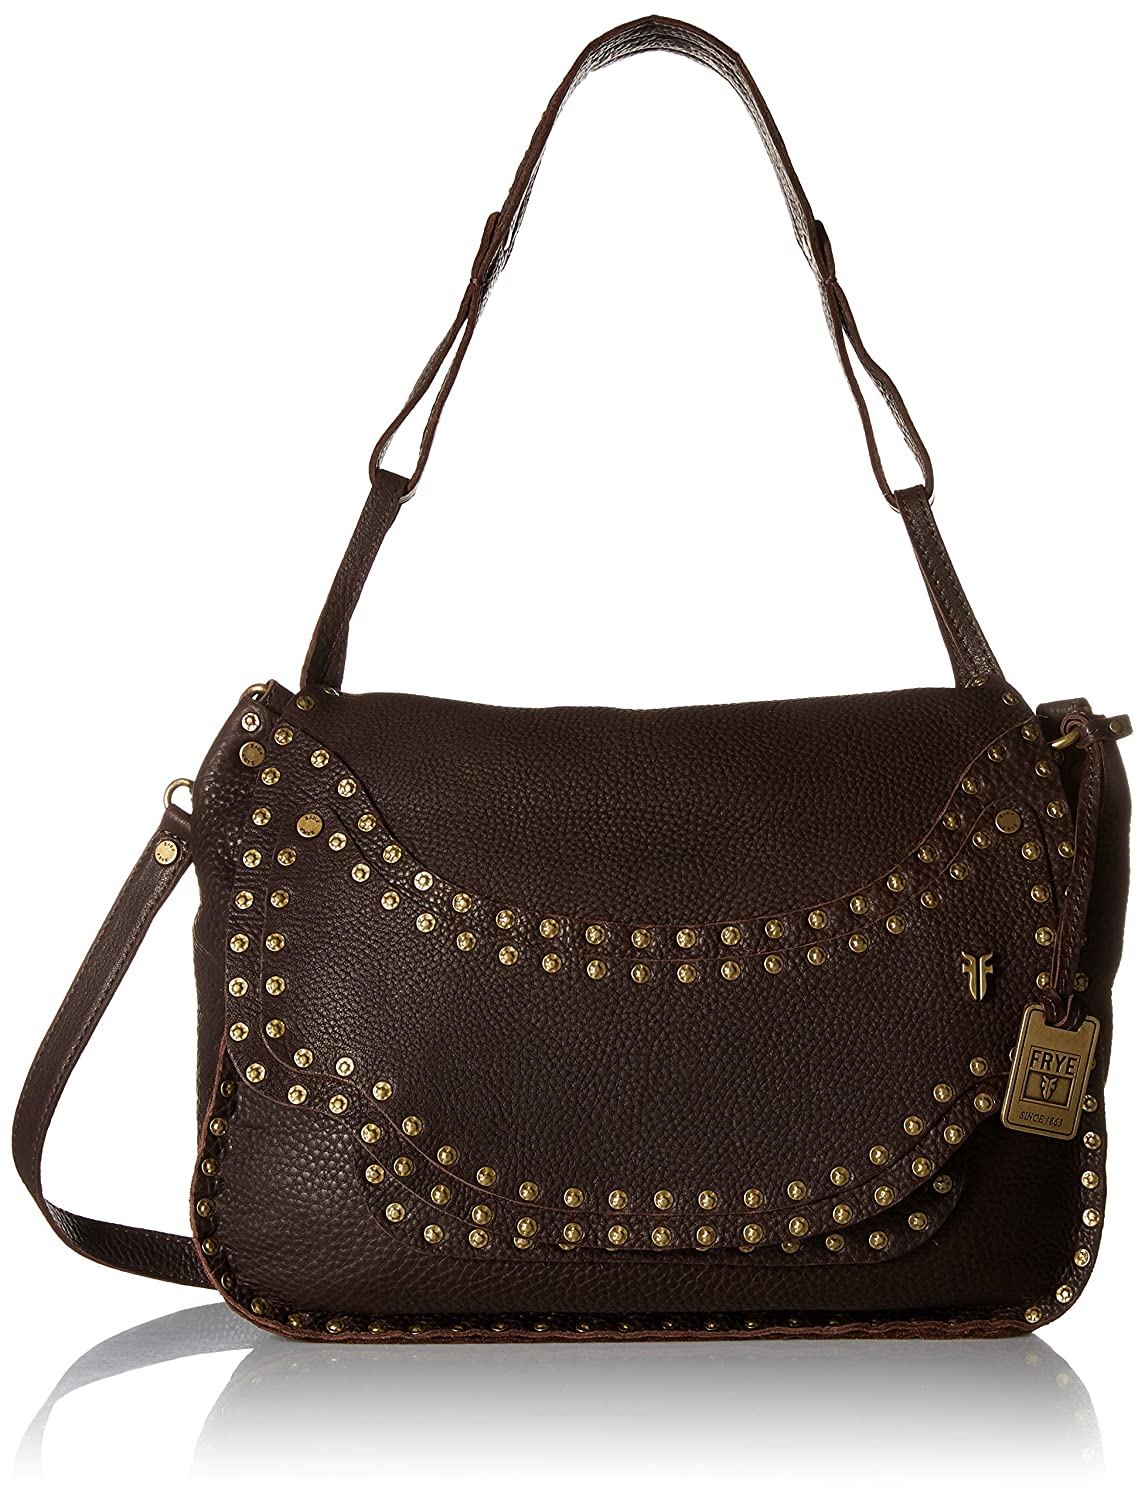 FRYE Nikki Nail Head Flap Crossbody Handbag